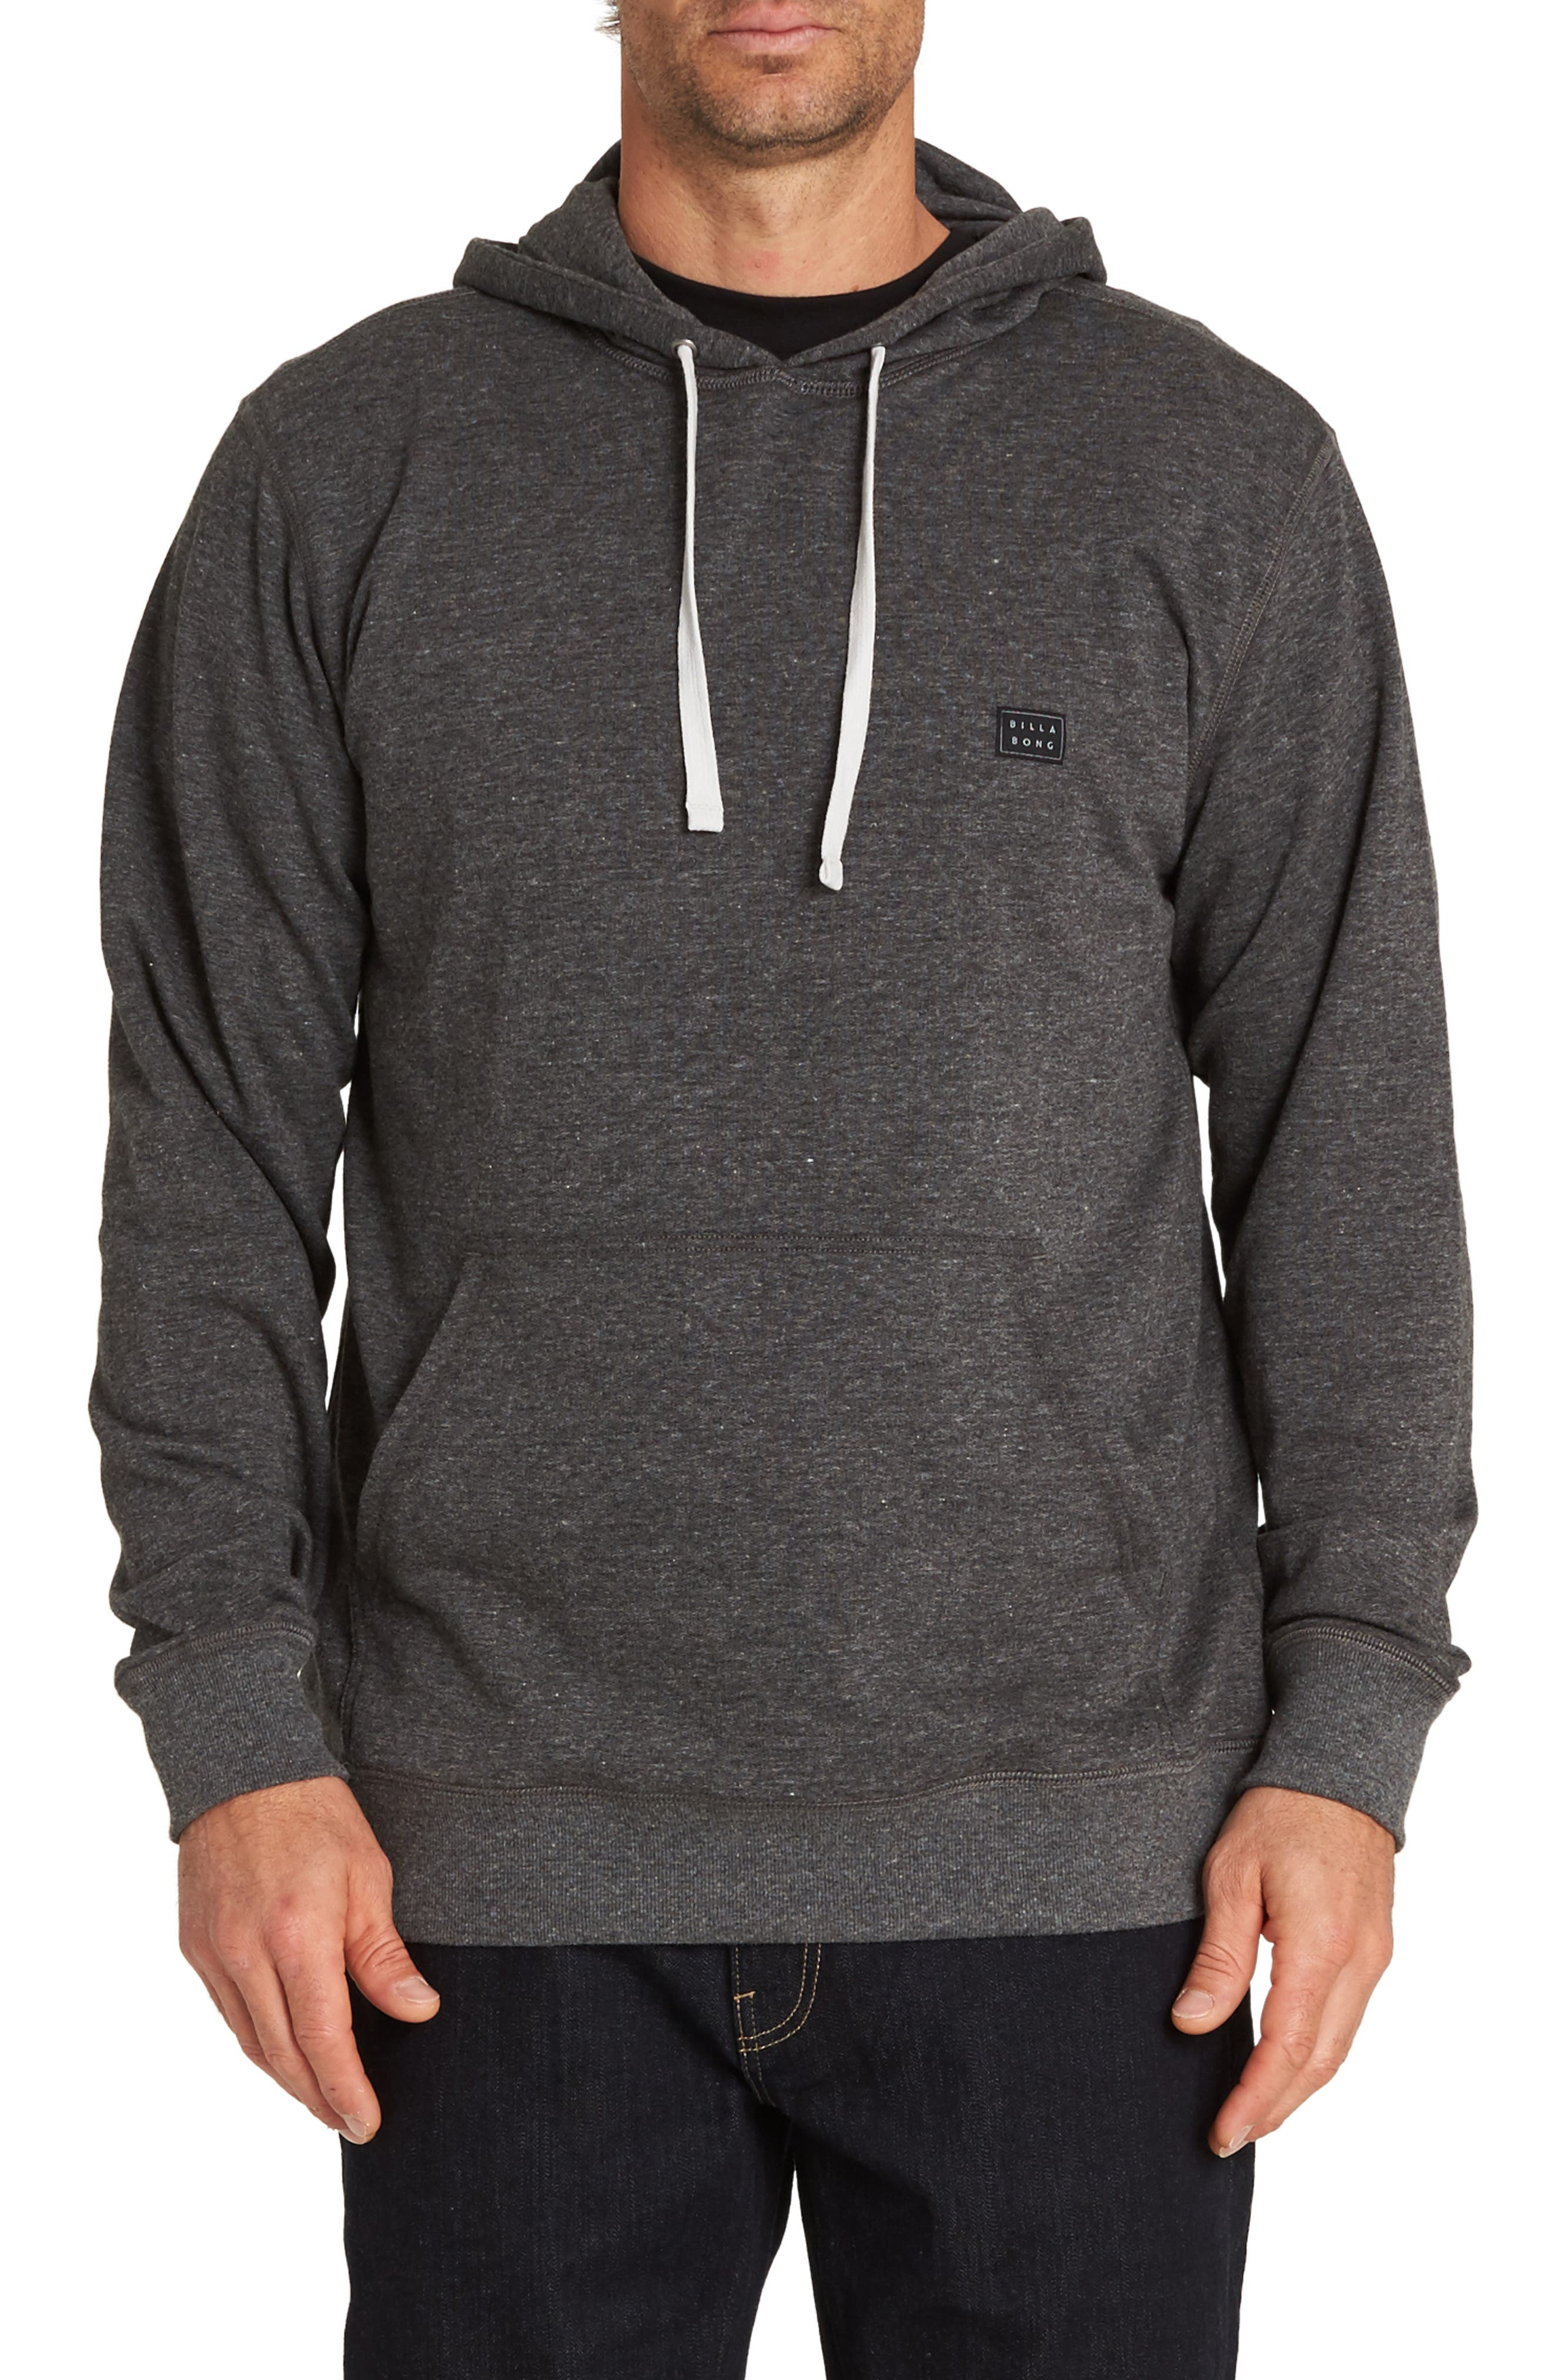 All Day Hoodie,                             Main thumbnail 1, color,                             001